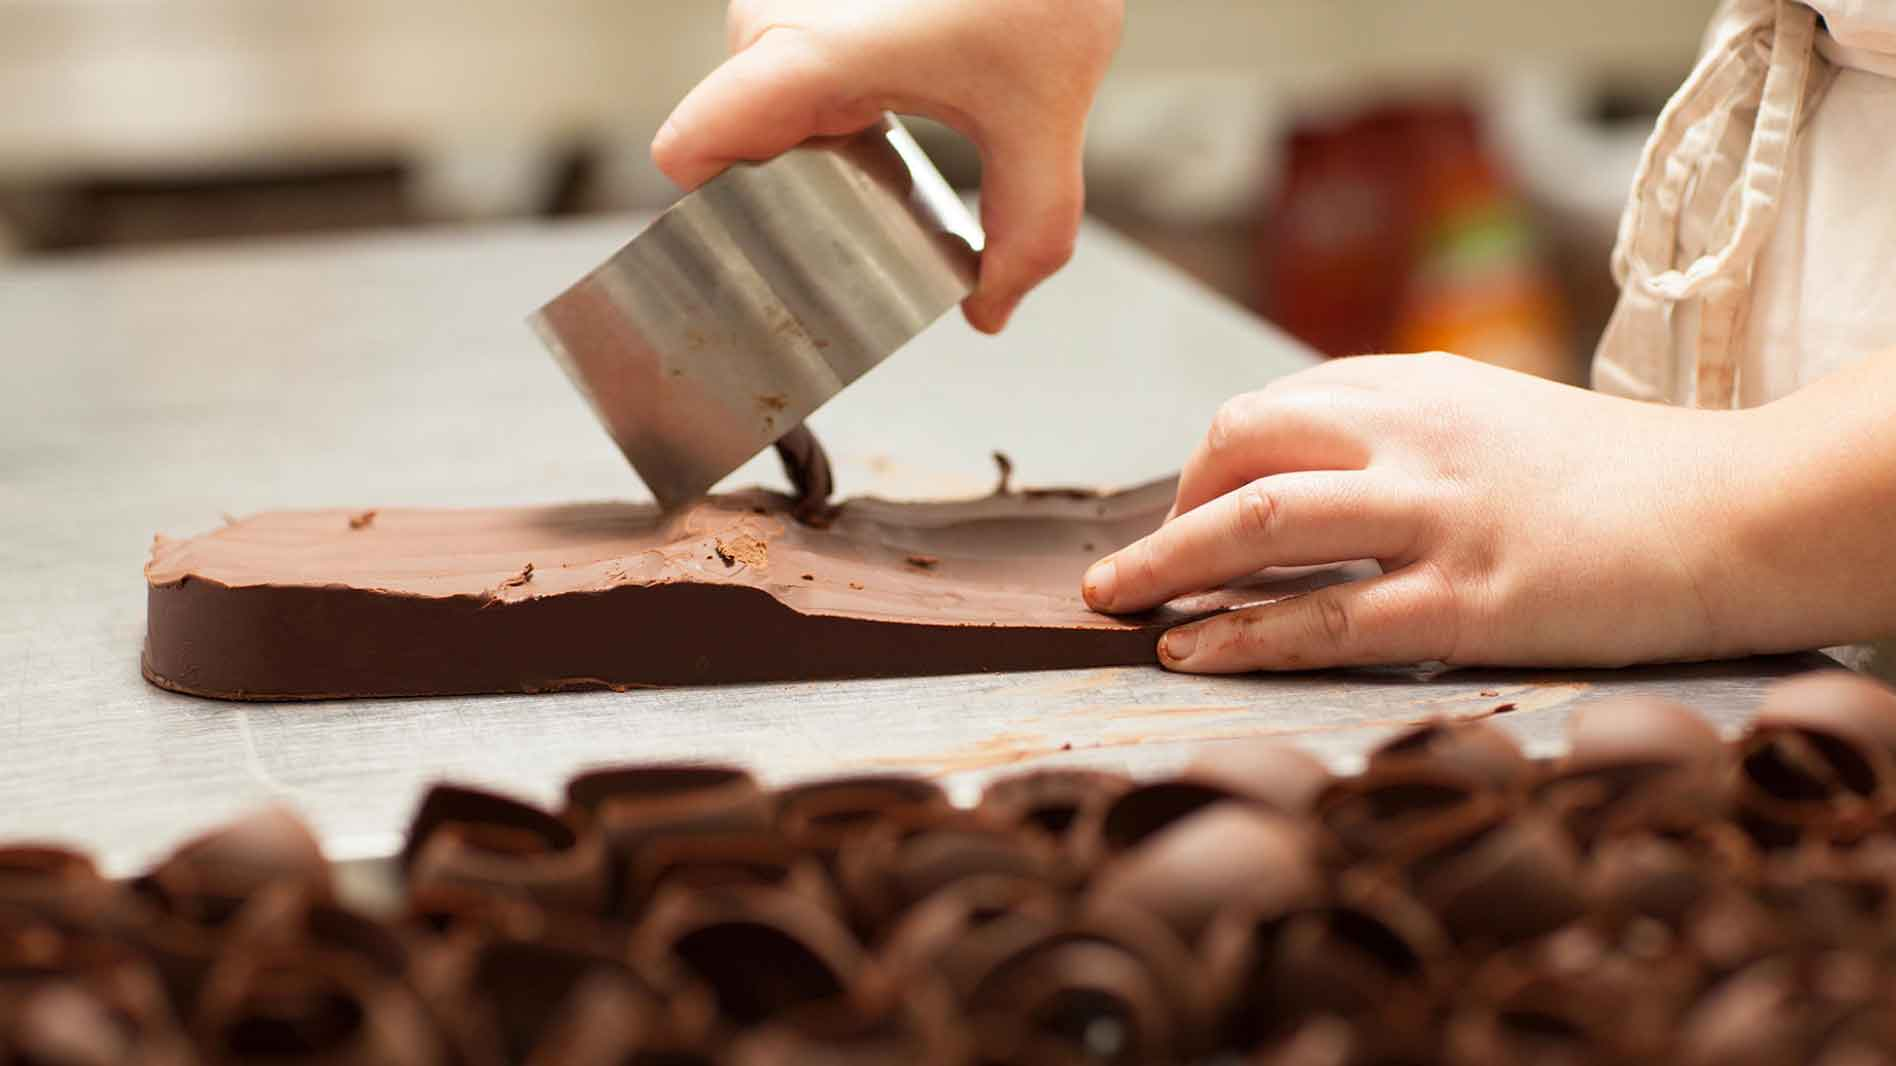 Chocolate 101: Know your chocolate basics!